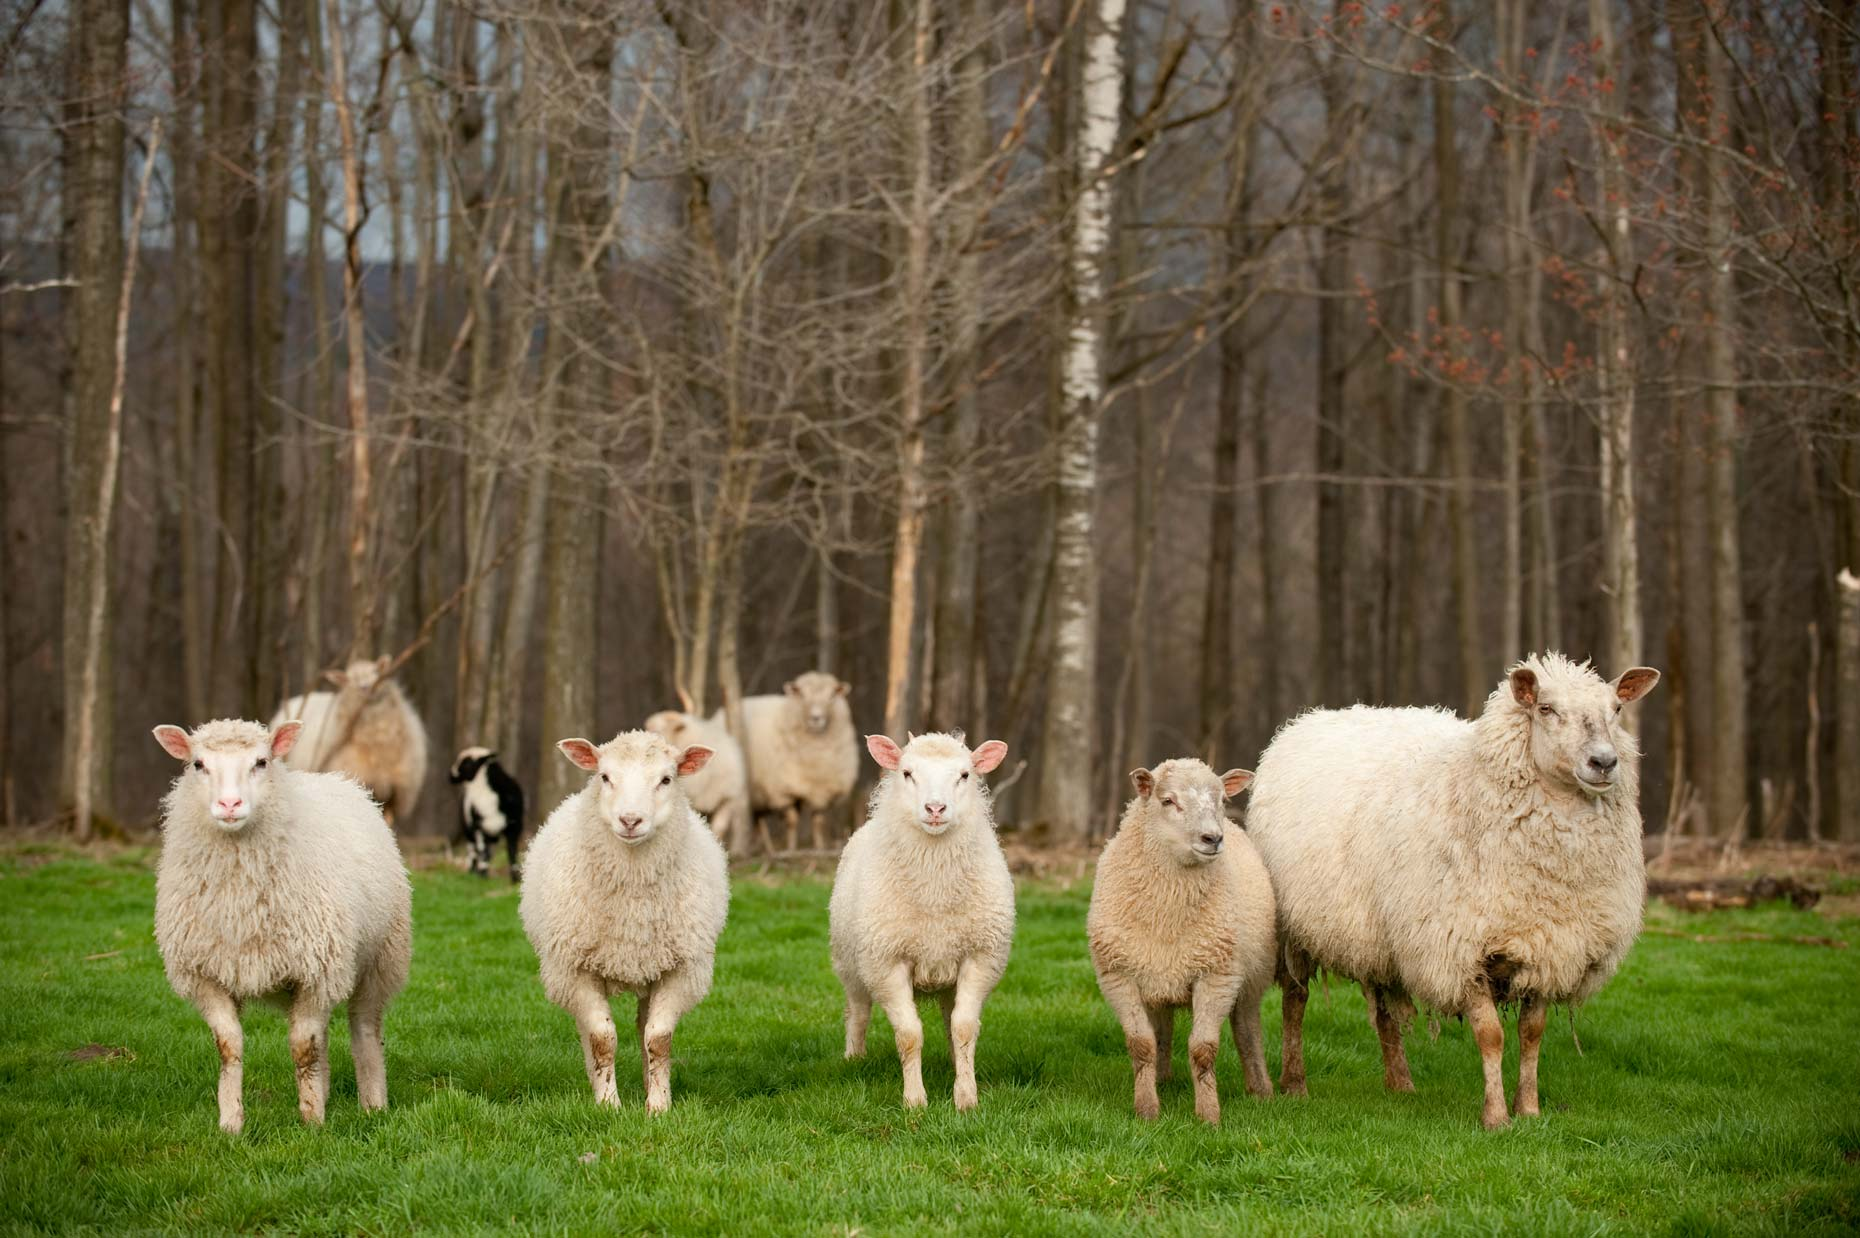 Sheep on farm photography by Jennifer May